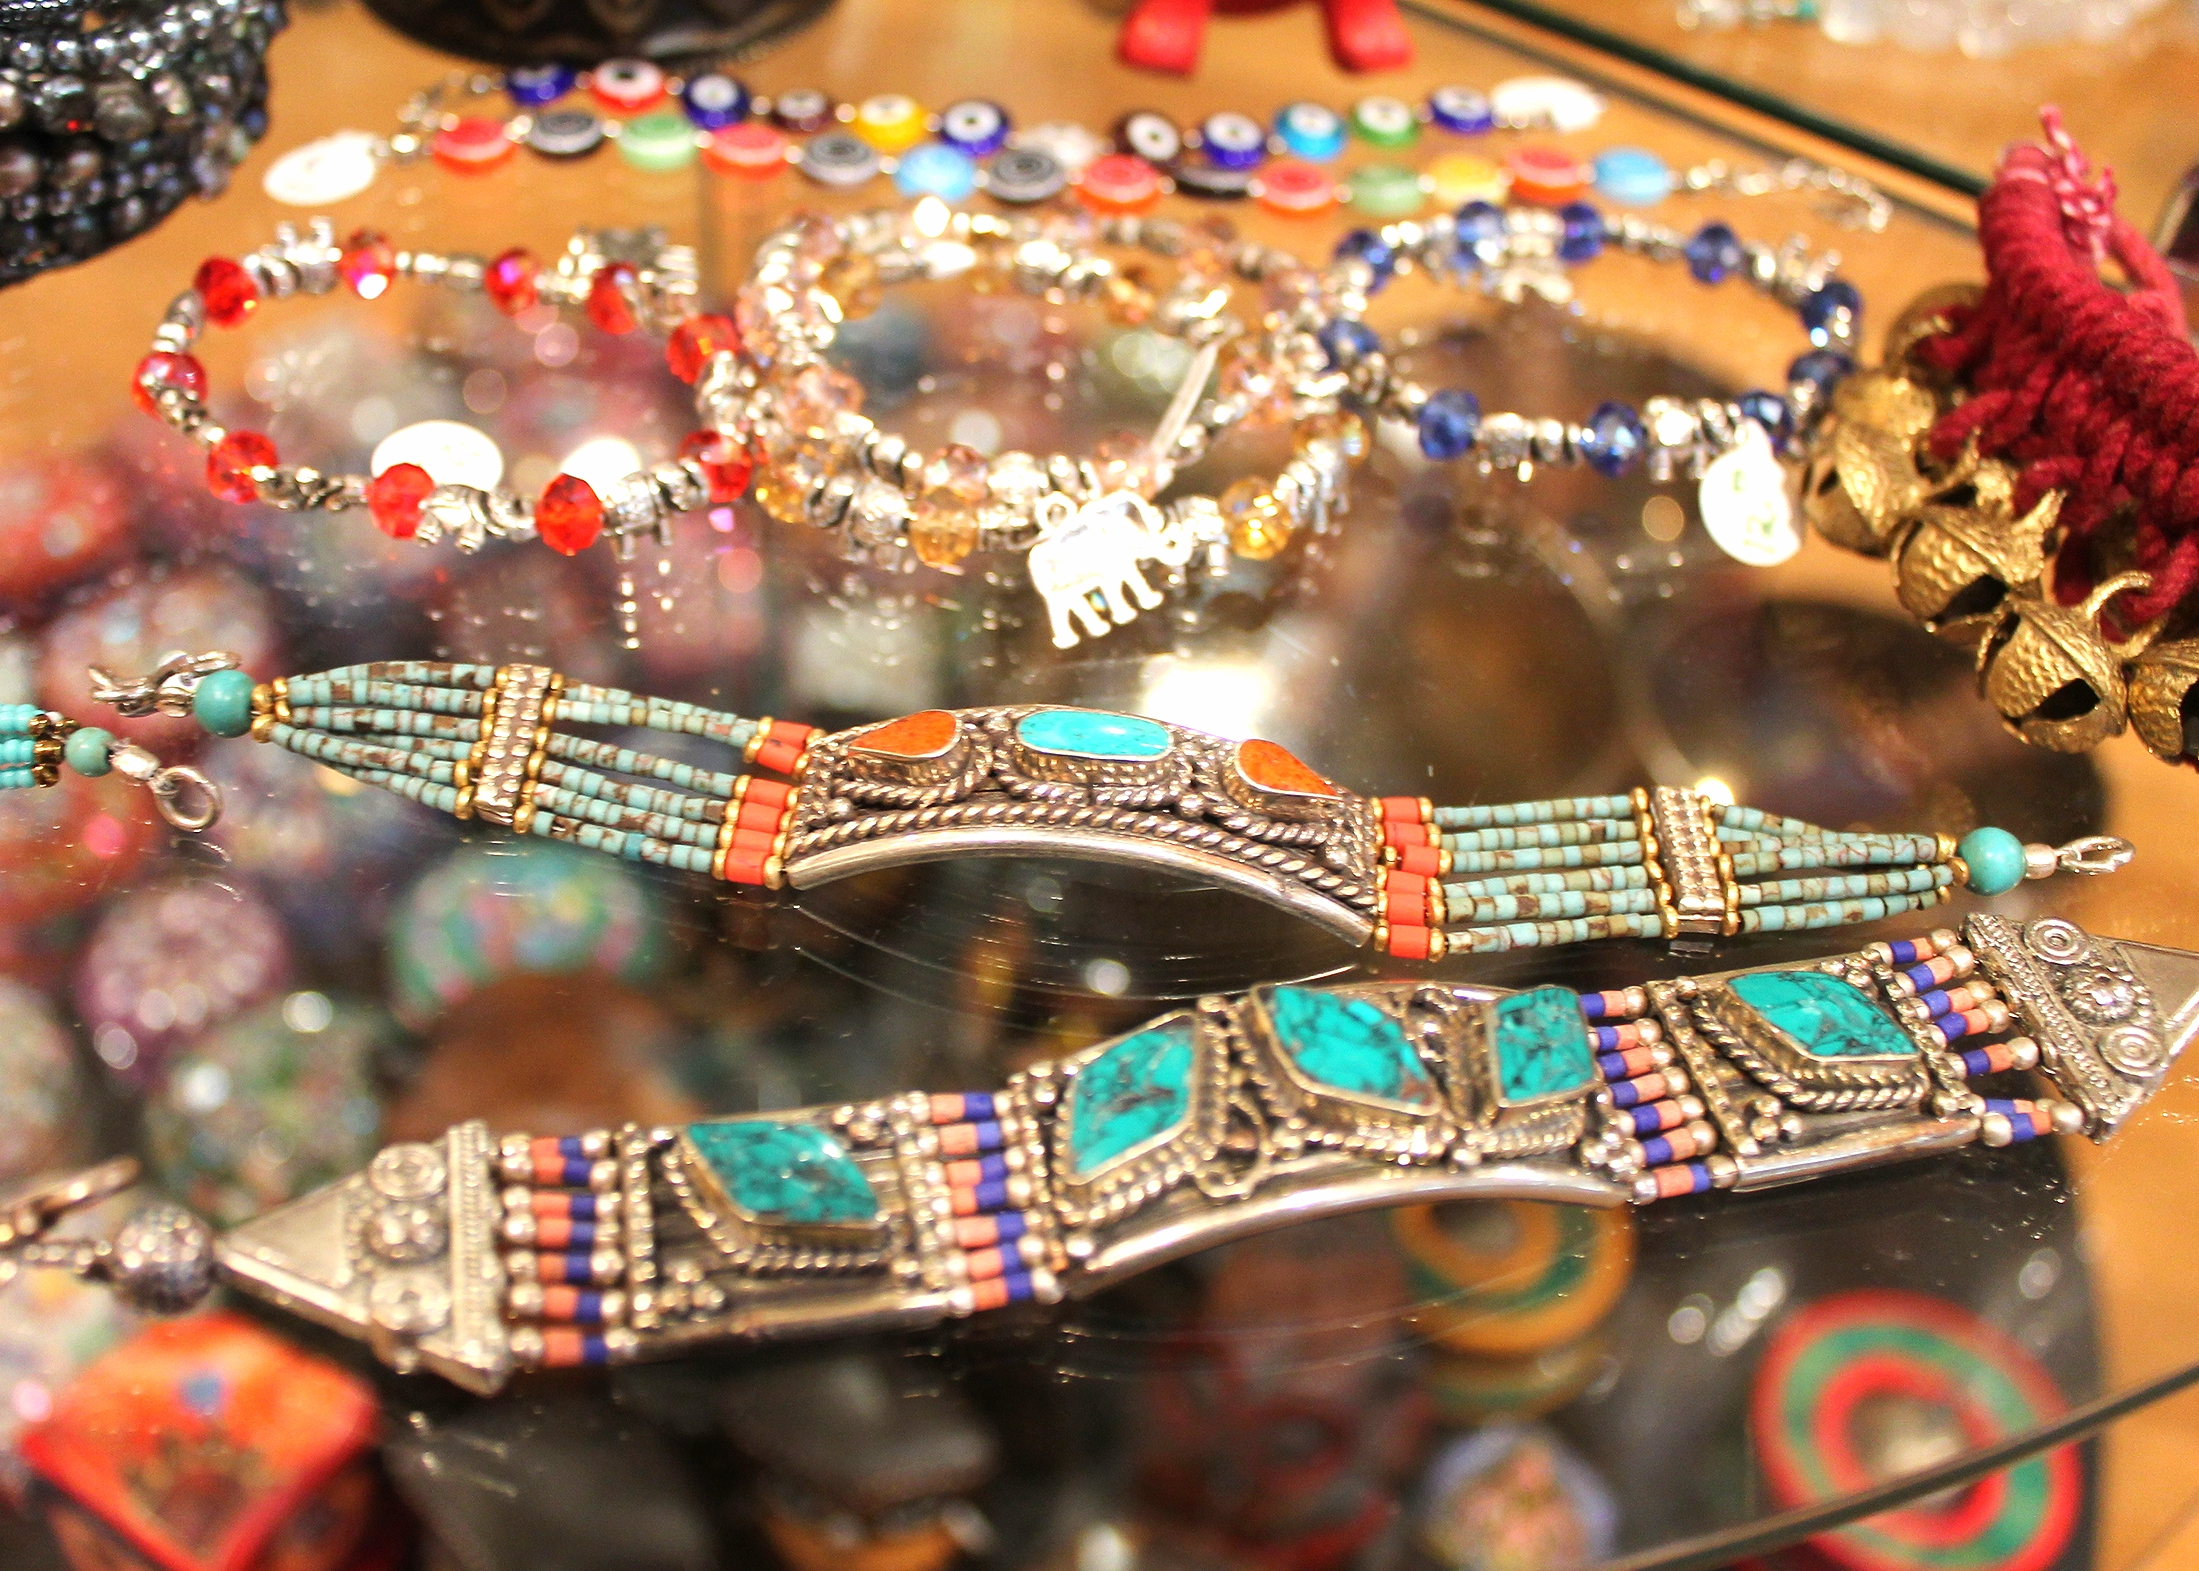 A small selection of bracelets the store offers. The front metal bracelets are crafted in a Nepali style from real turquoise, coral, and lapis lazuli.